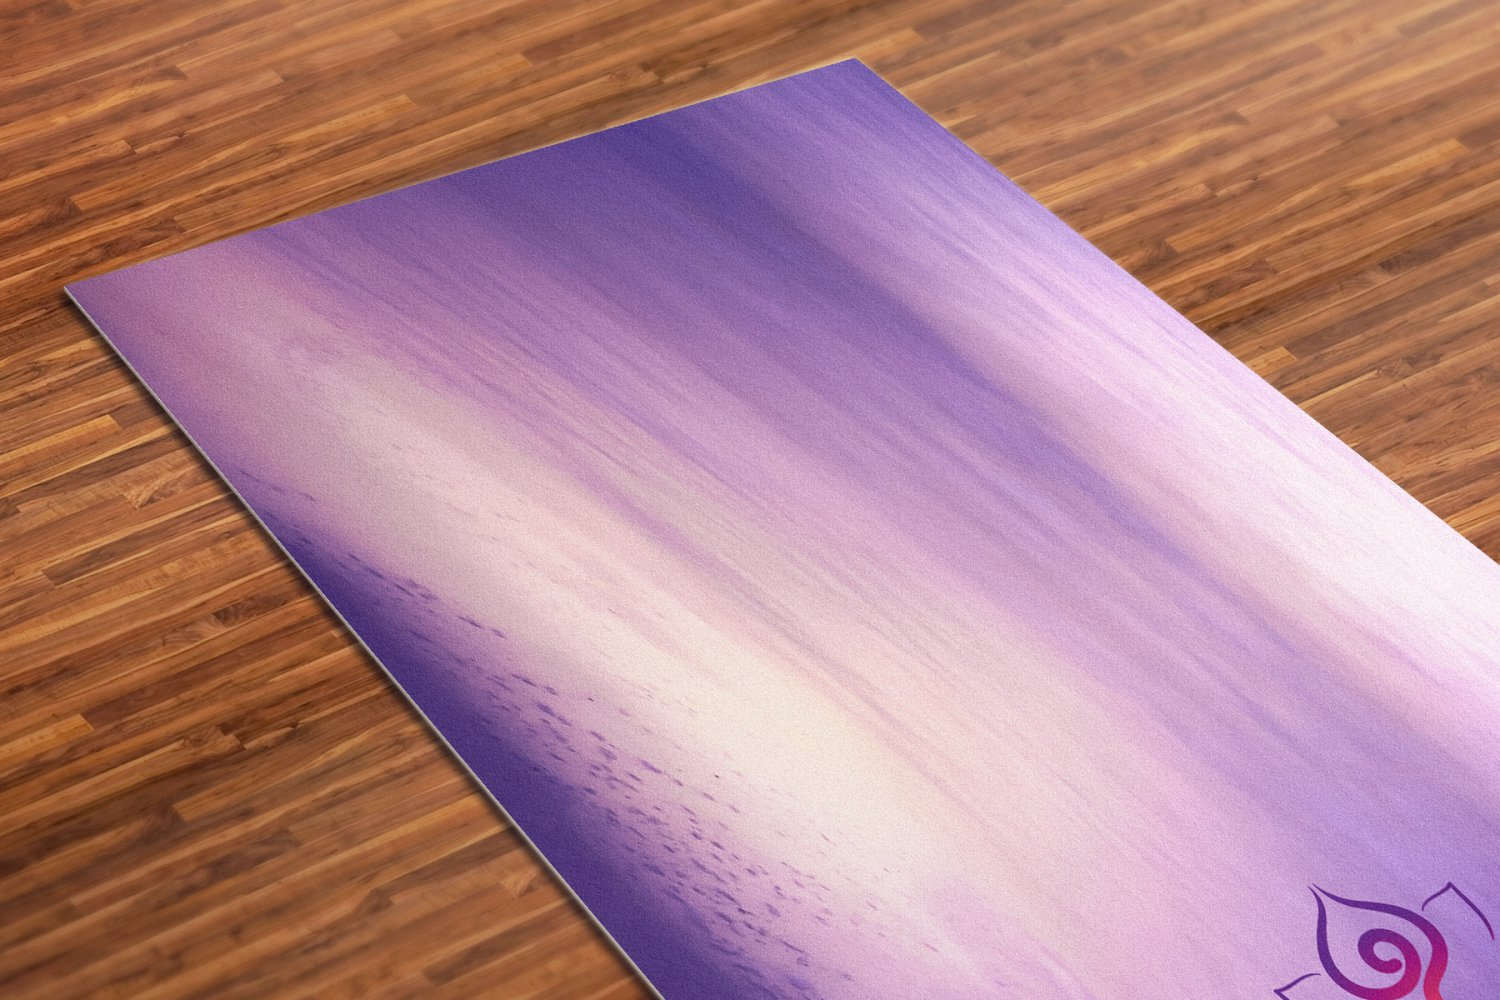 Purple Haze Printed Yoga Mat Thick 5 mm 24 x 72 Pilates Decor Rug Gift Fitness Exercise Meditation